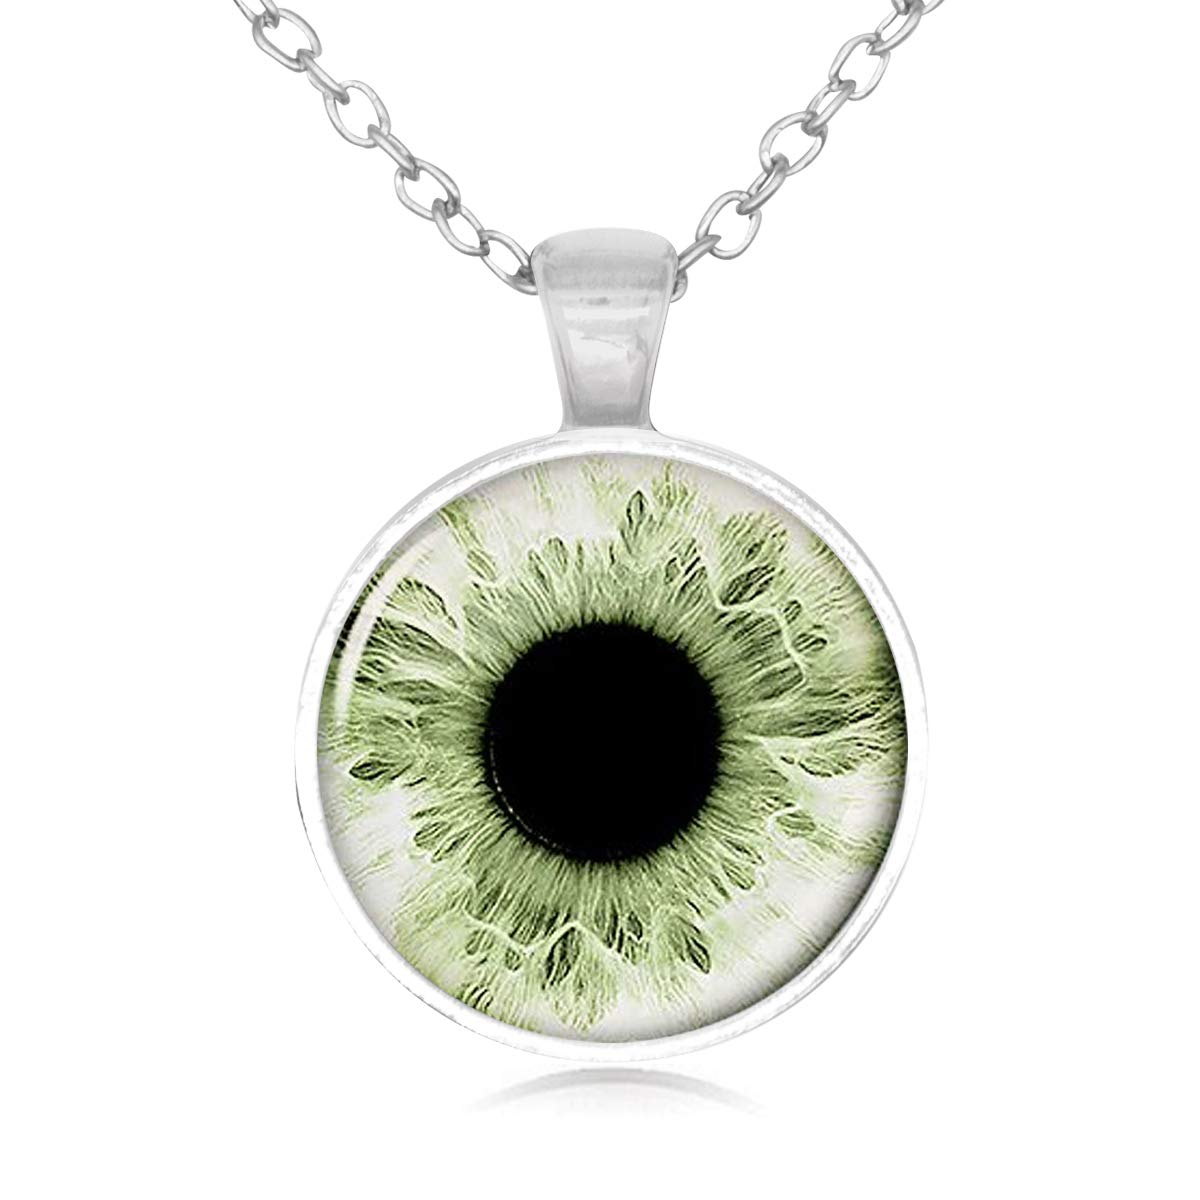 Lightrain Tender Green Eyeball Photo Pendant Necklace Vintage Bronze Chain Statement Necklace Handmade Jewelry Gifts